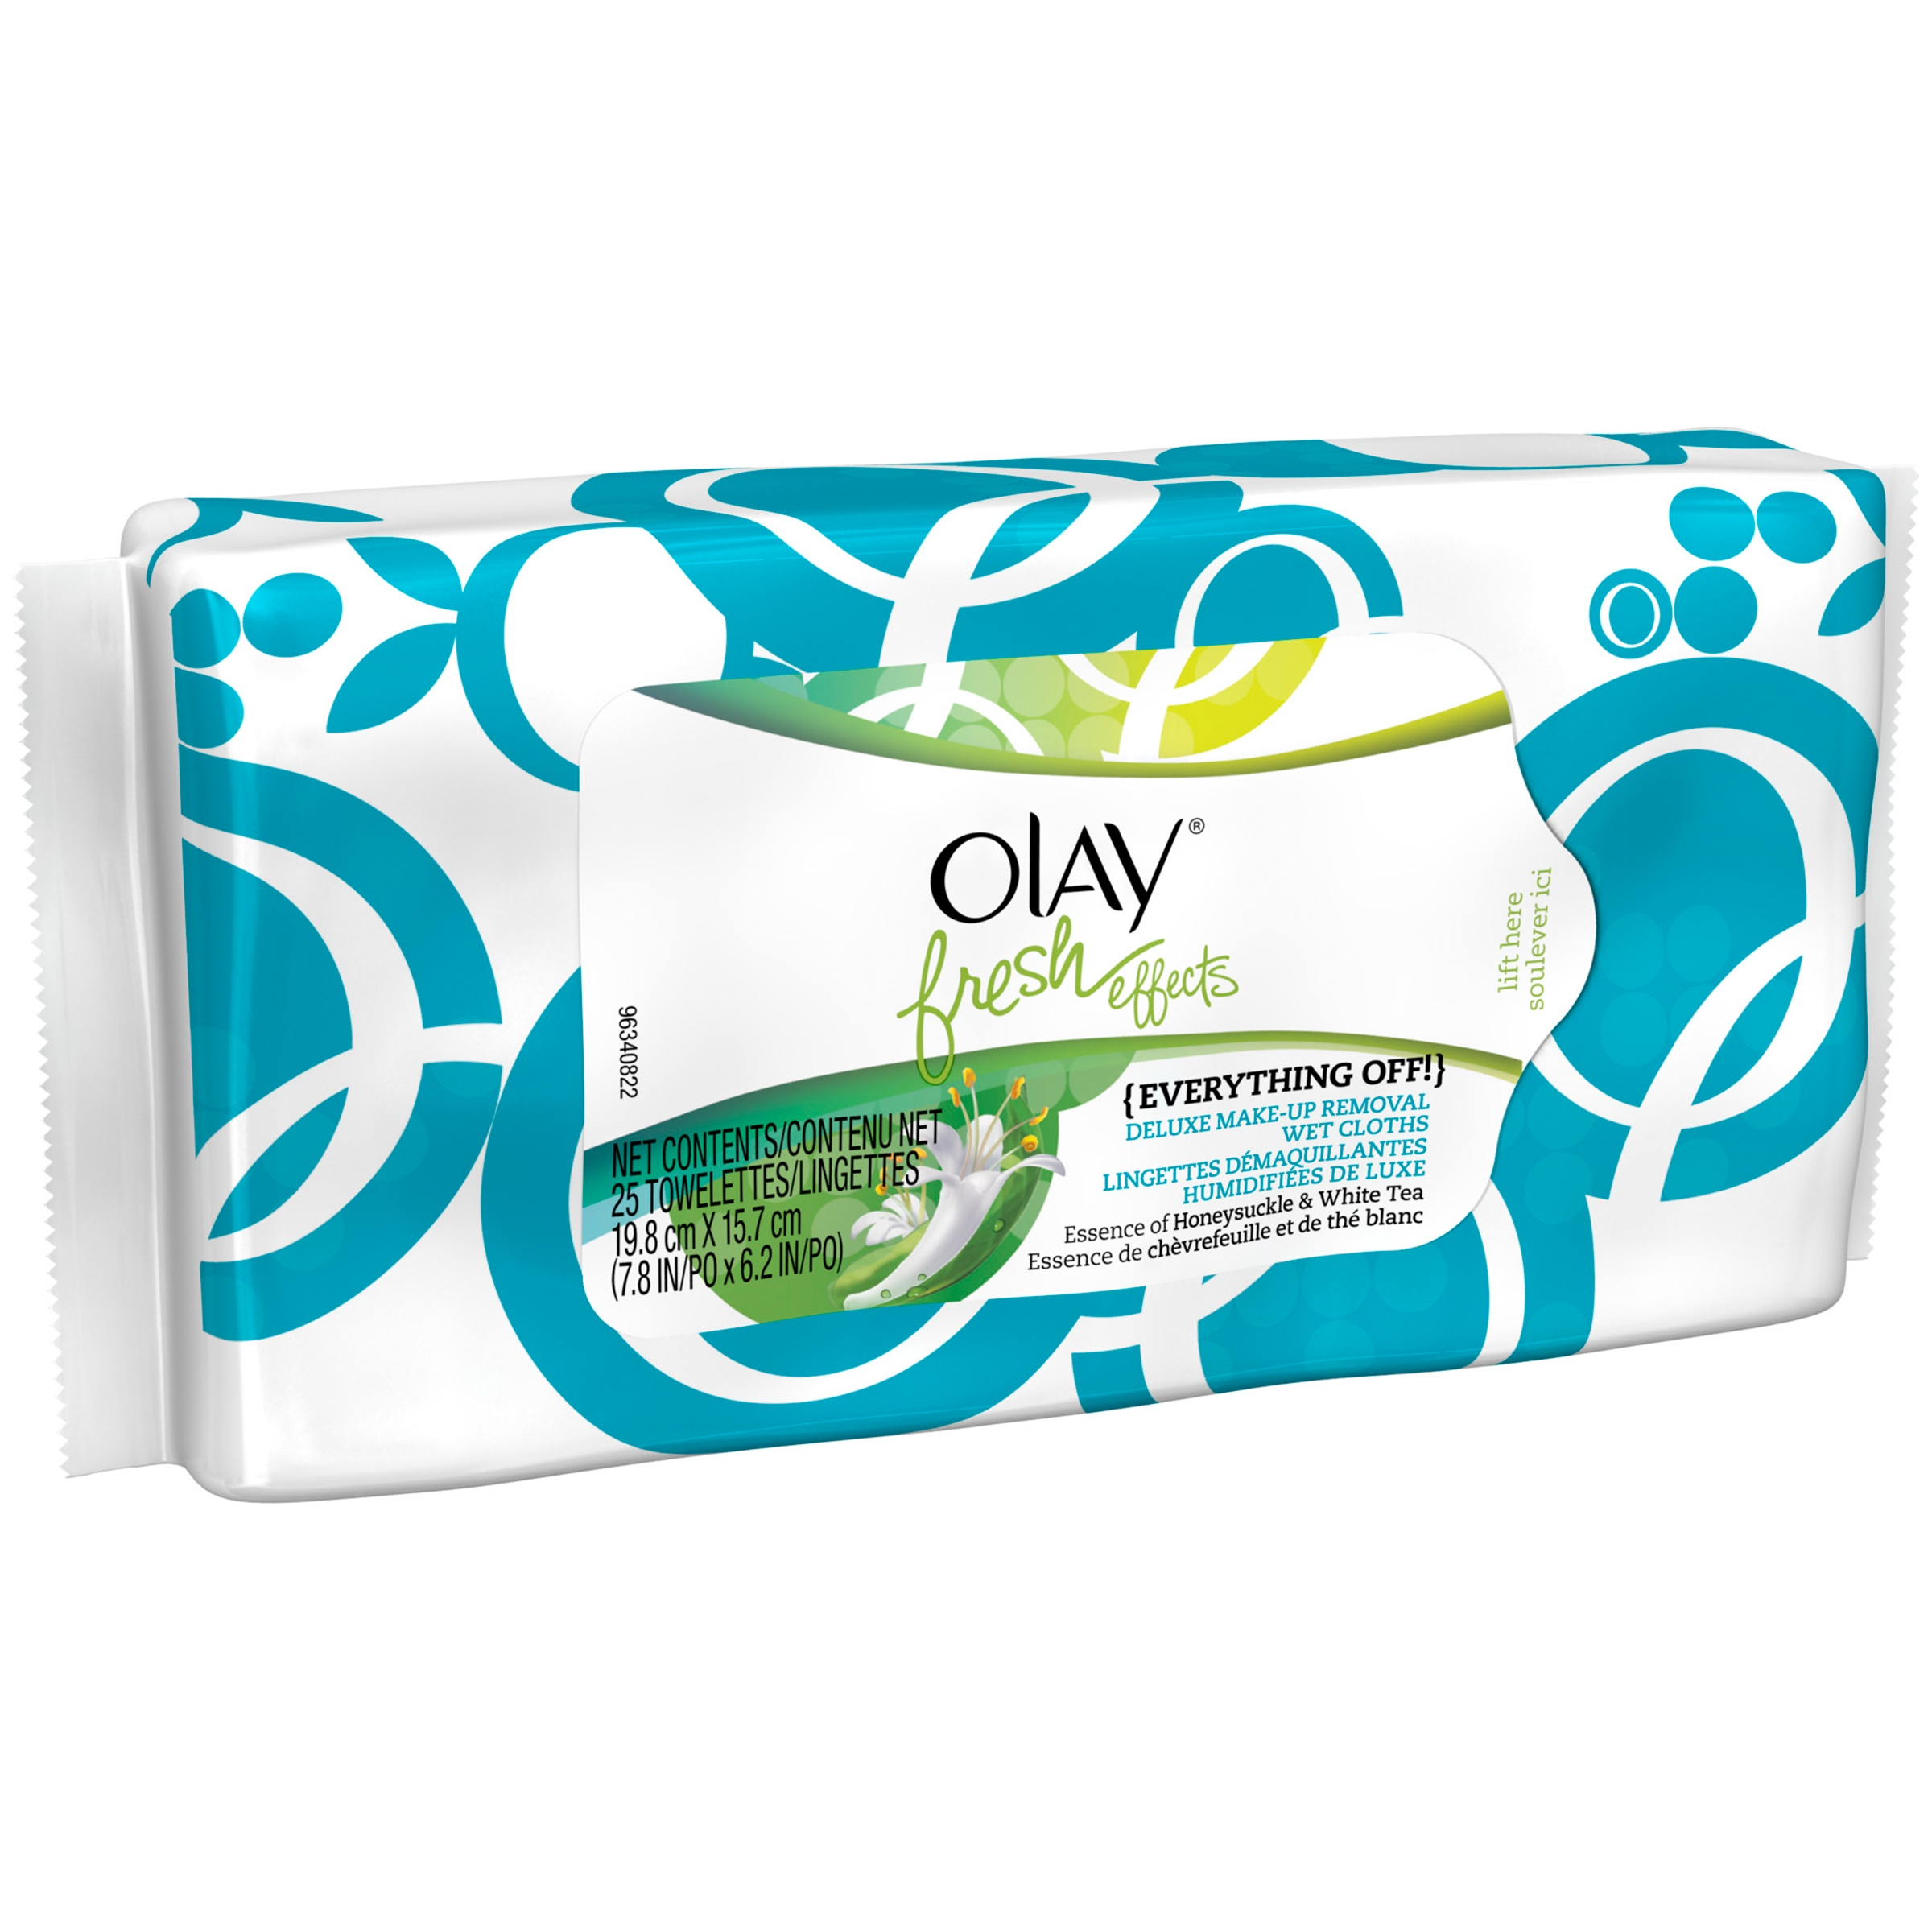 Olay Fresh Effects Everything Off! Deluxe Make-Up Removal Wet Cloths, 25 sheets